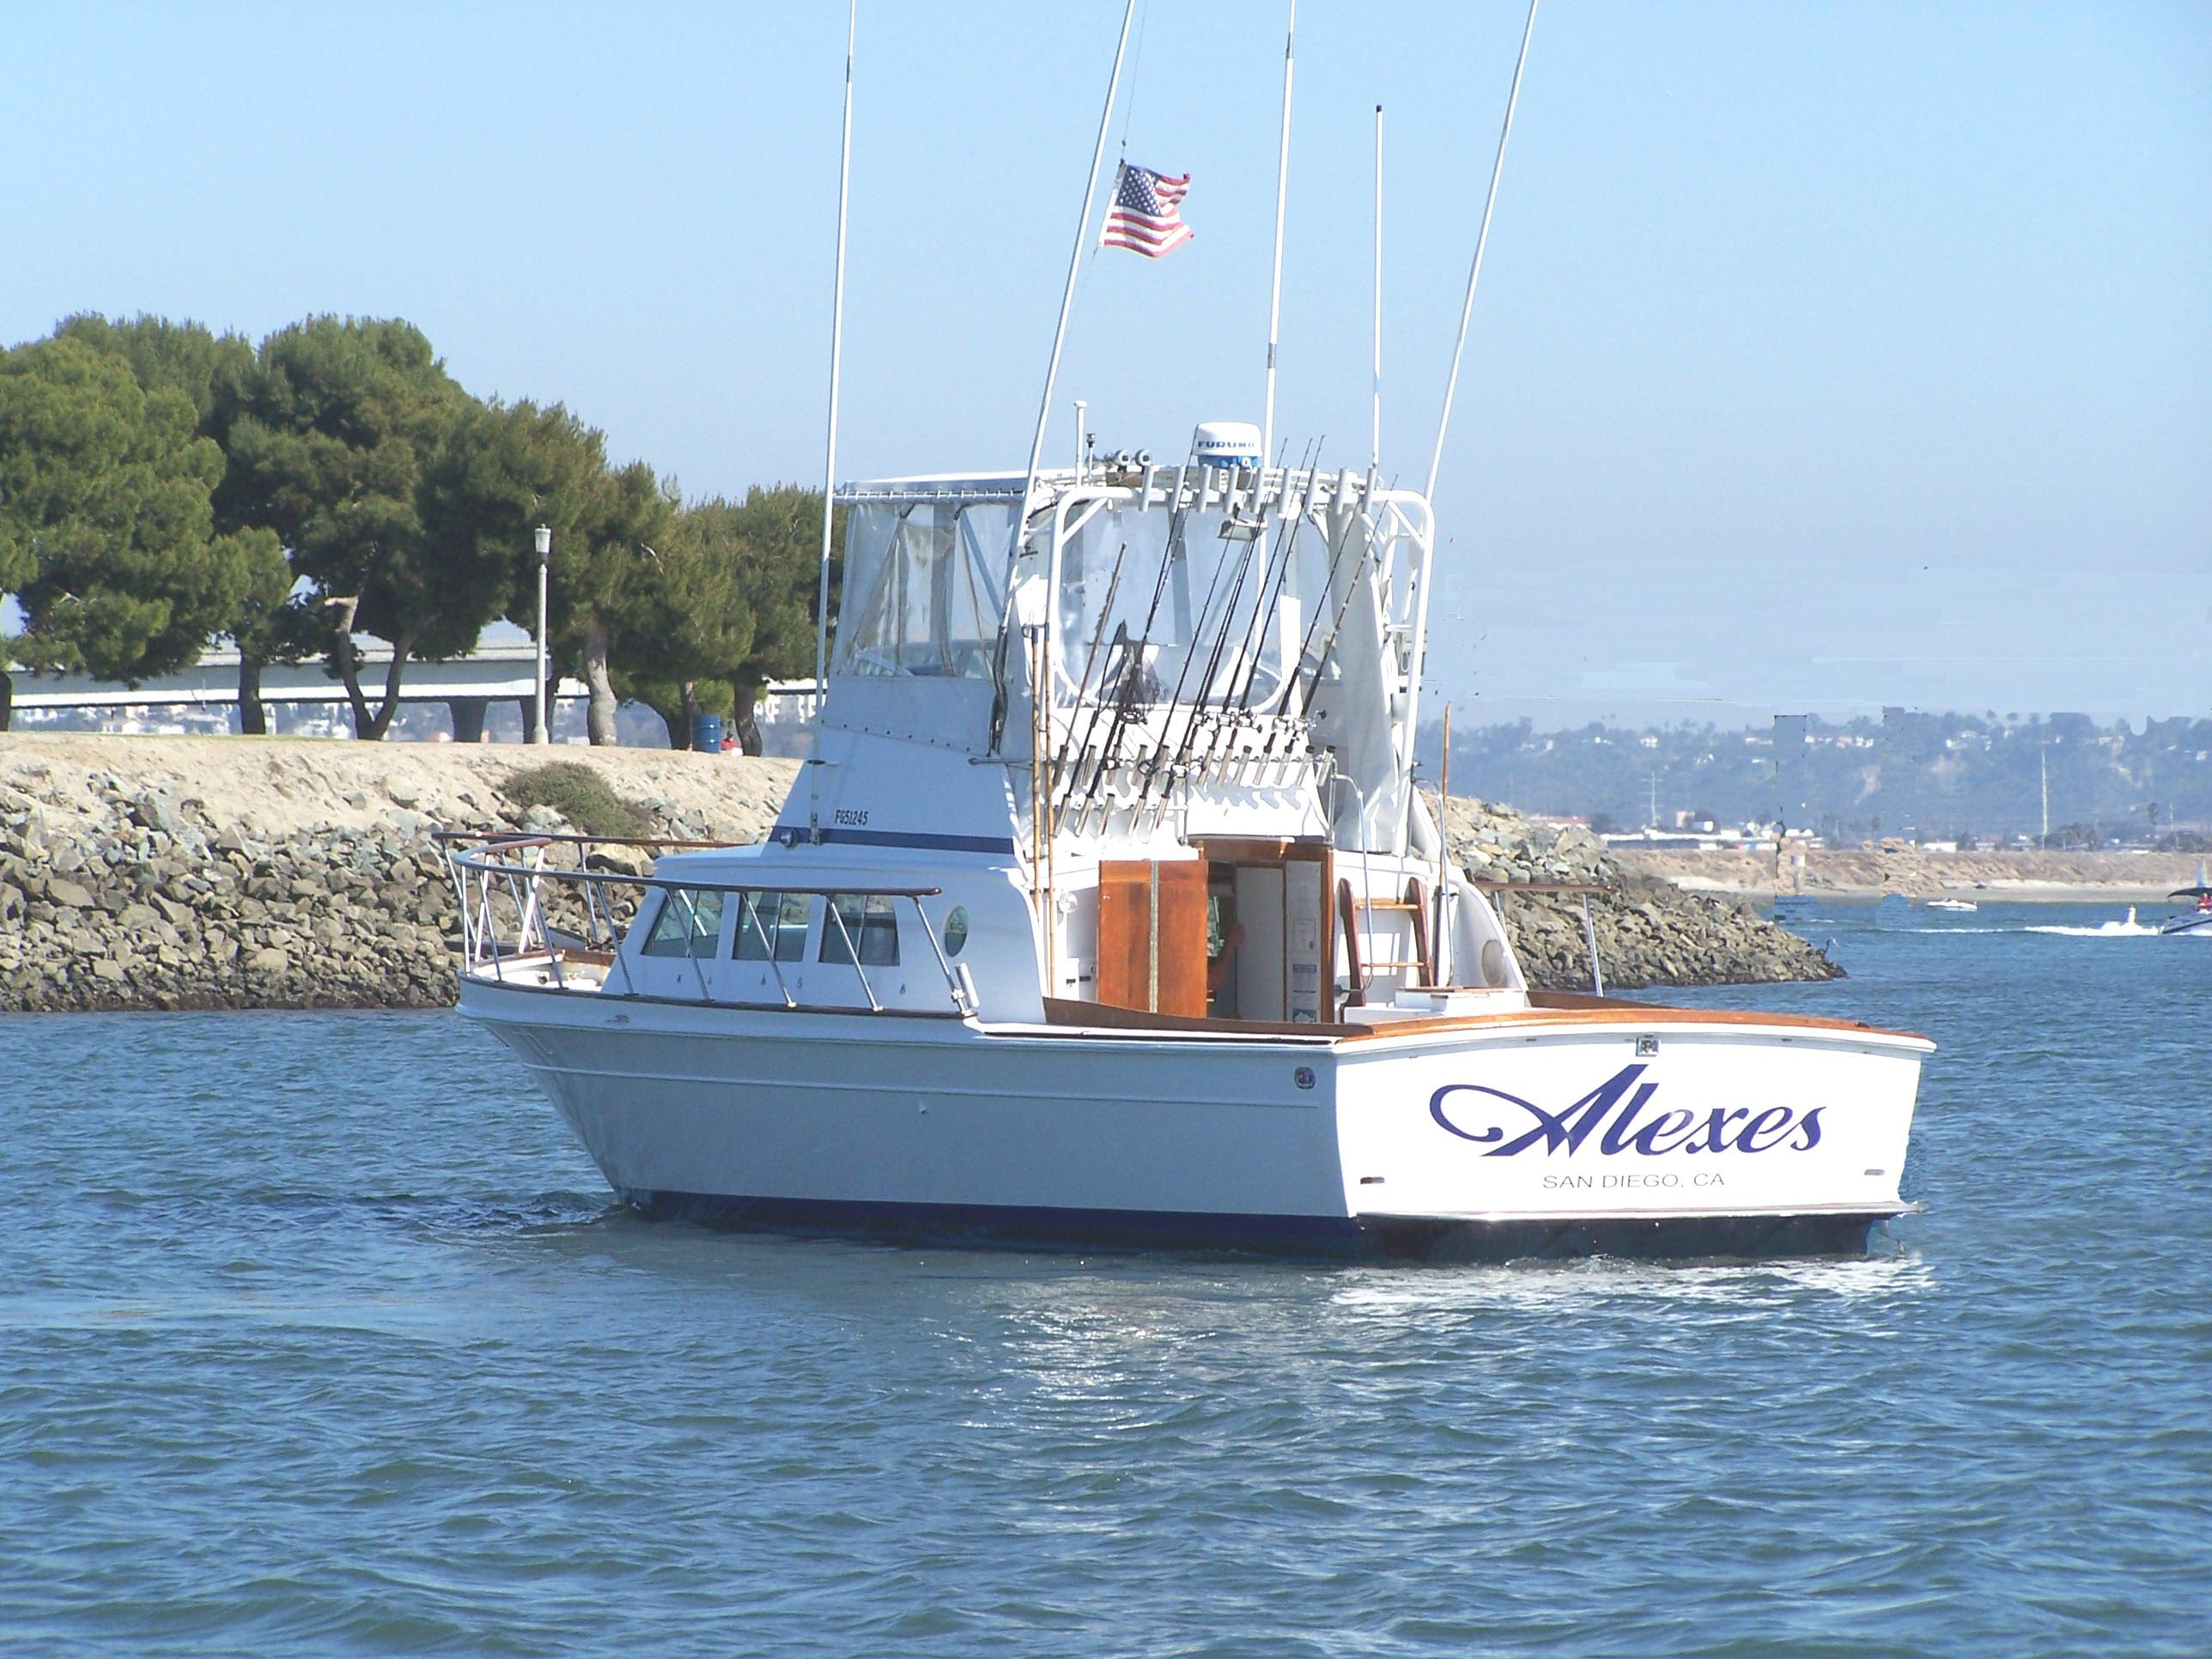 Alexes Sportfishing 6-pack San Diego at Seaforth Landing